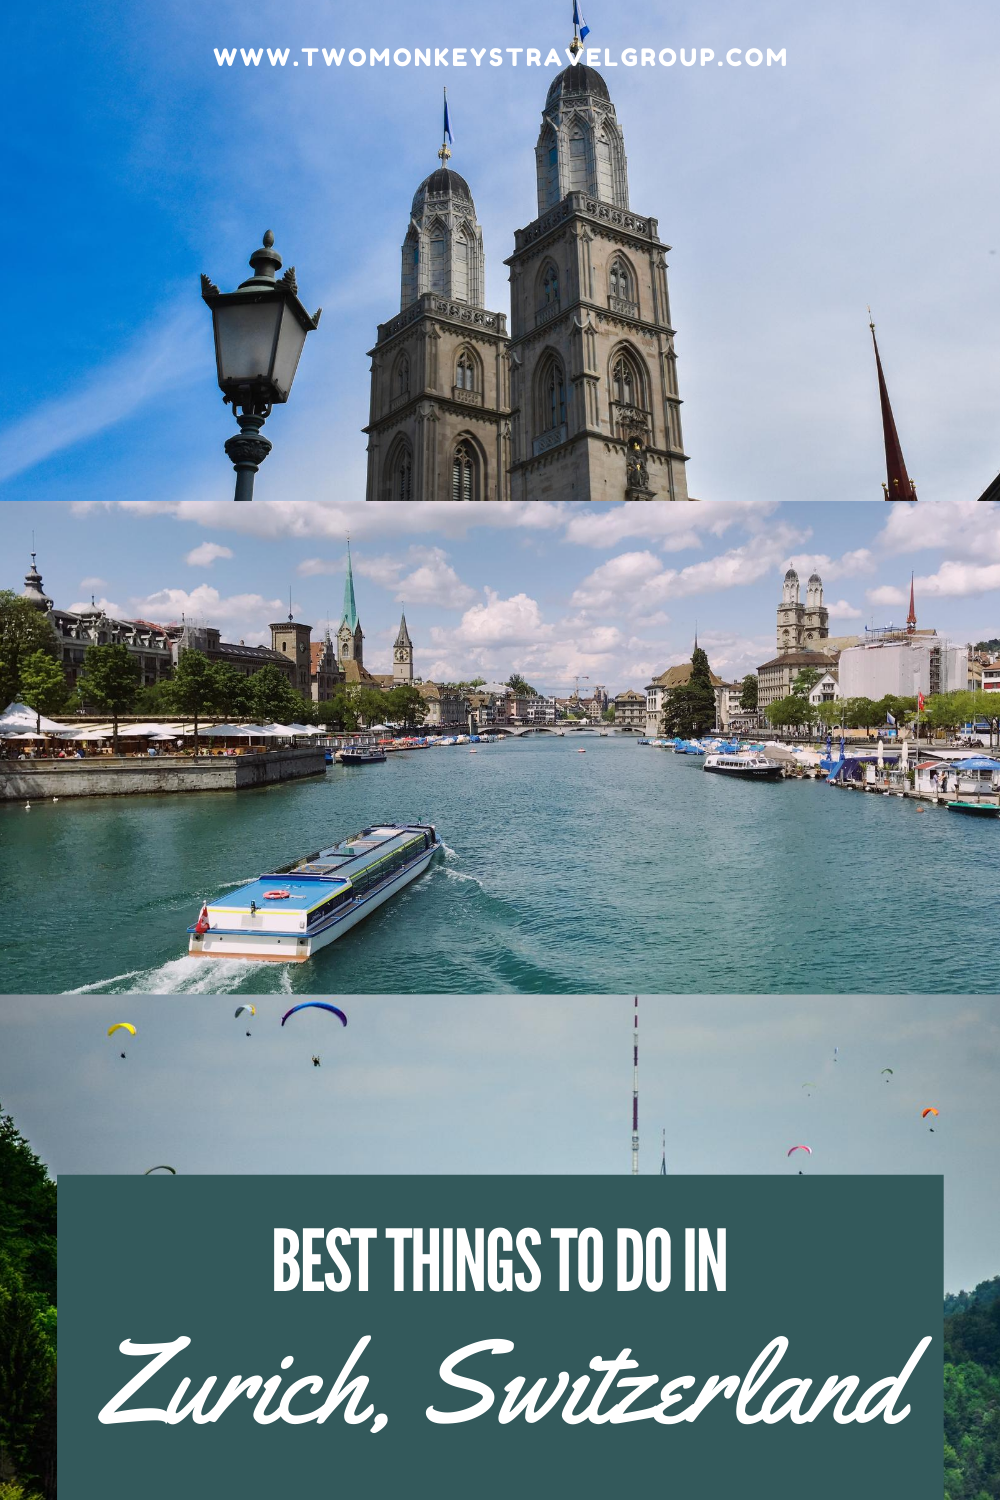 15 Best Things To Do in Zurich, Switzerland [With Suggested Day Trips]